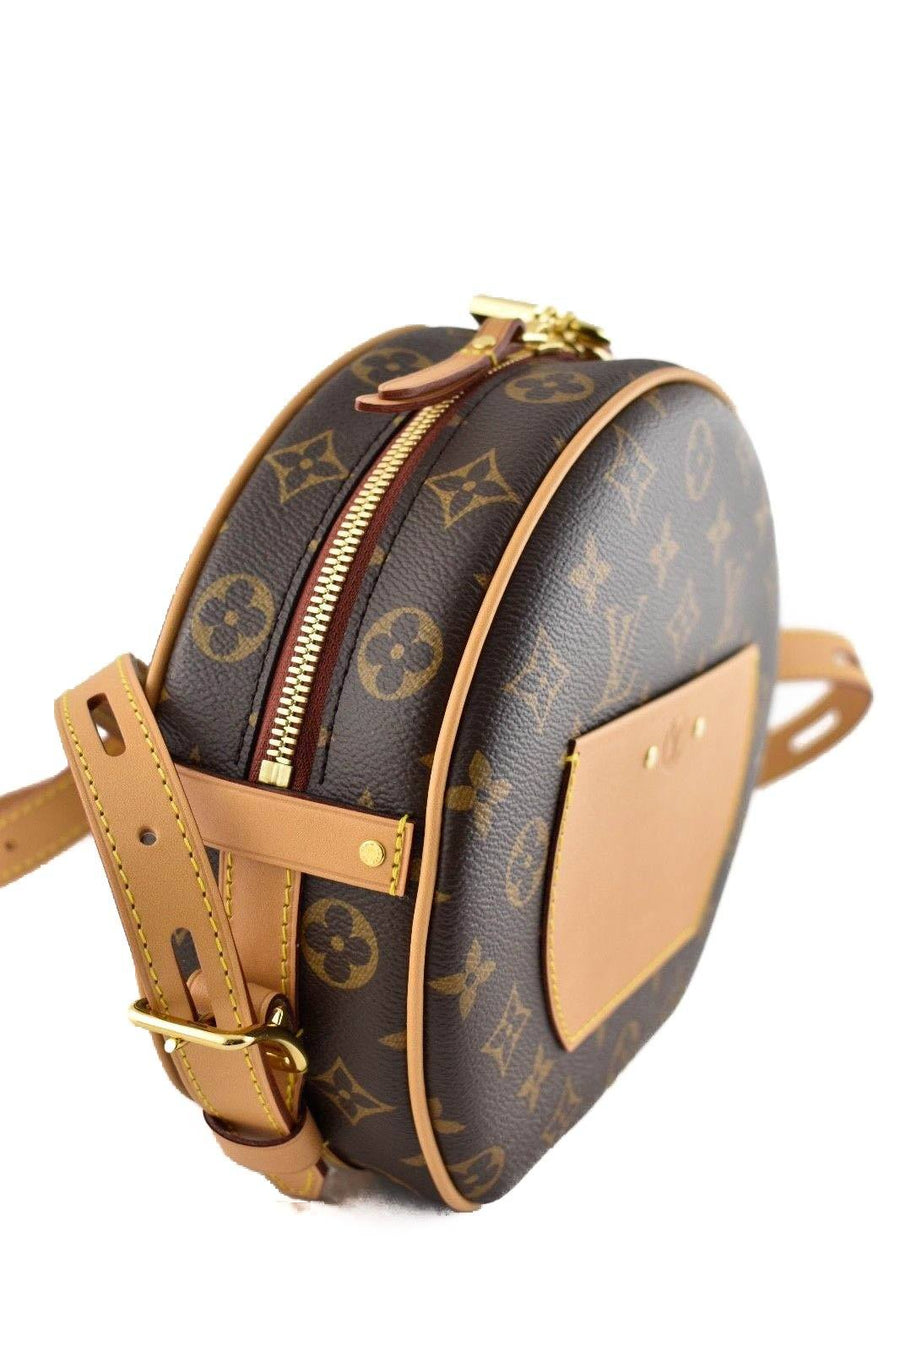 Petite Boite Chapeau Souple Monogram LV Brown Mini Hat Box Bag LOUIS VUITTON